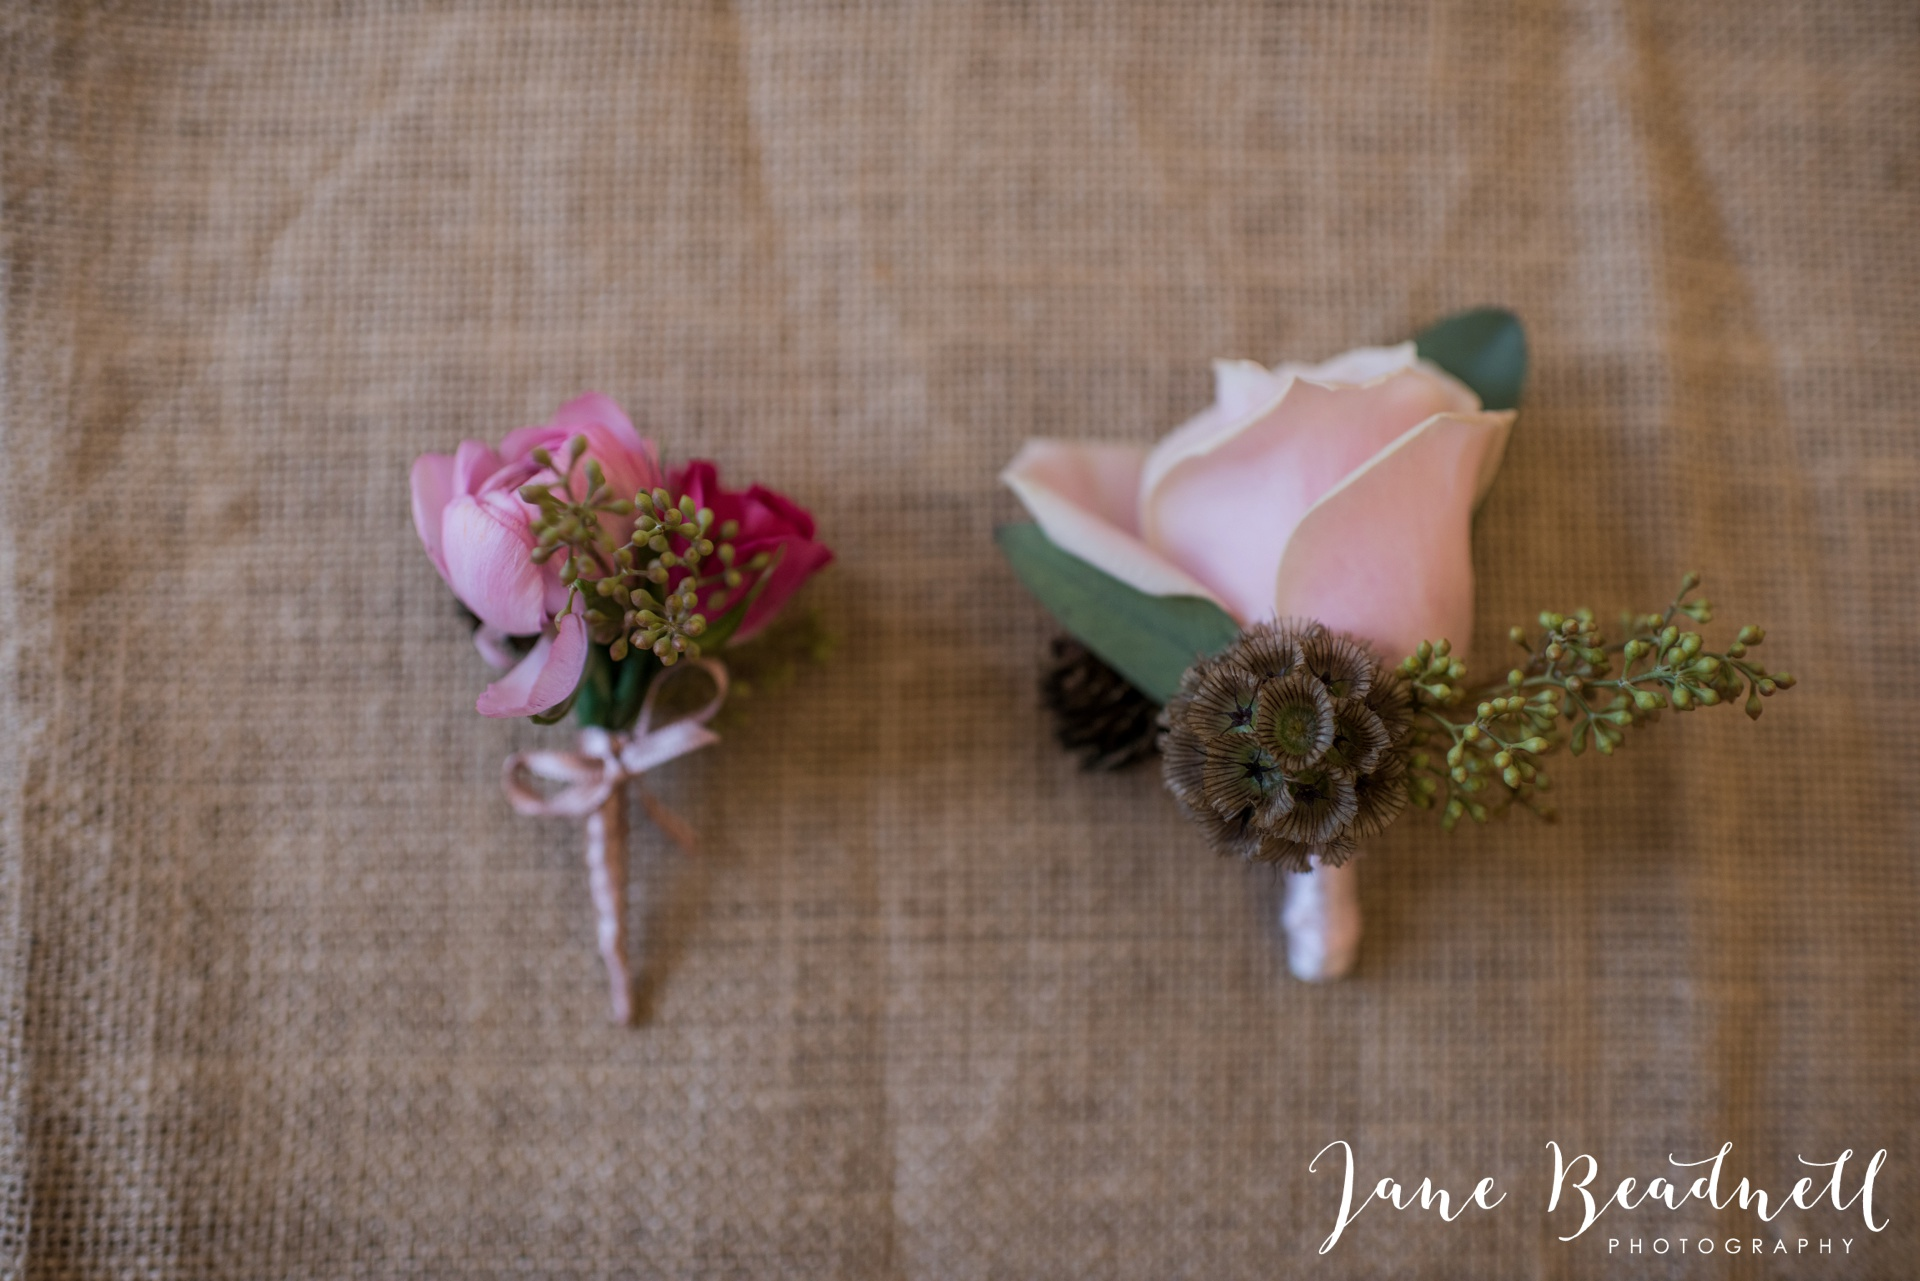 Leafy couture wedding flowers wedding photography by Jane Beadnell photography_0010